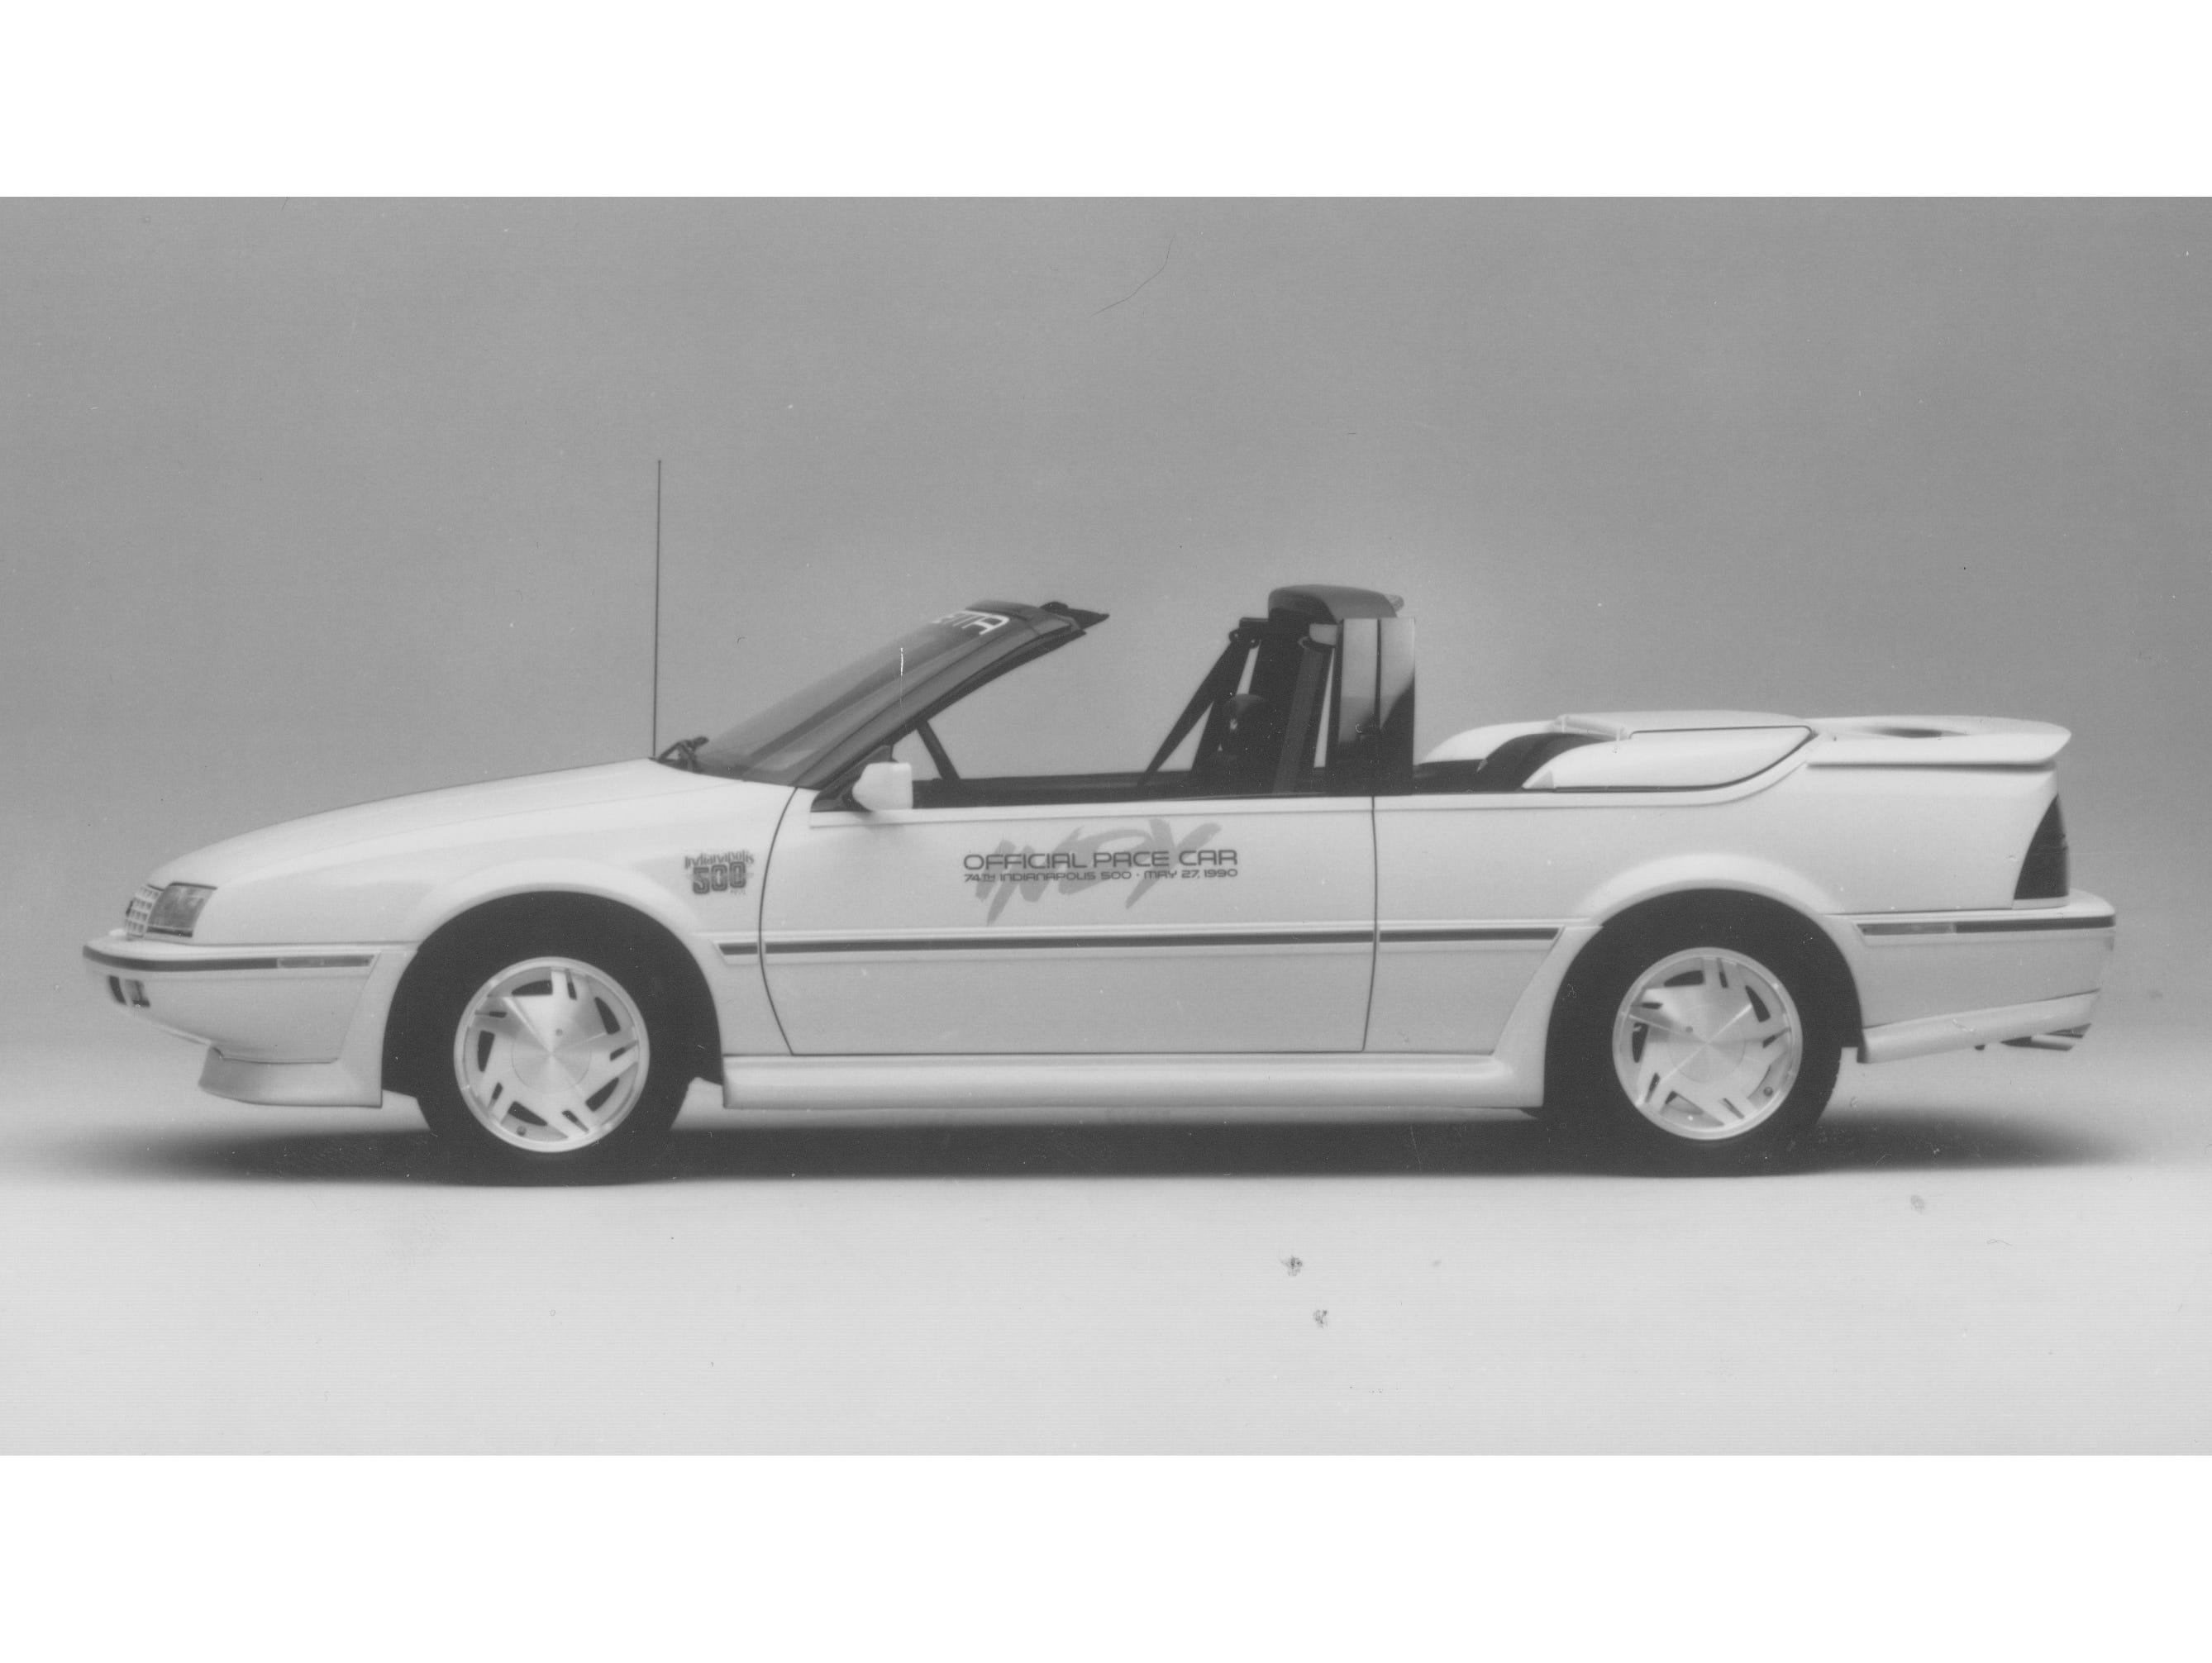 The 1990 Indianapolis 500 Pace Car was the Chevrolet Beretta convertible.